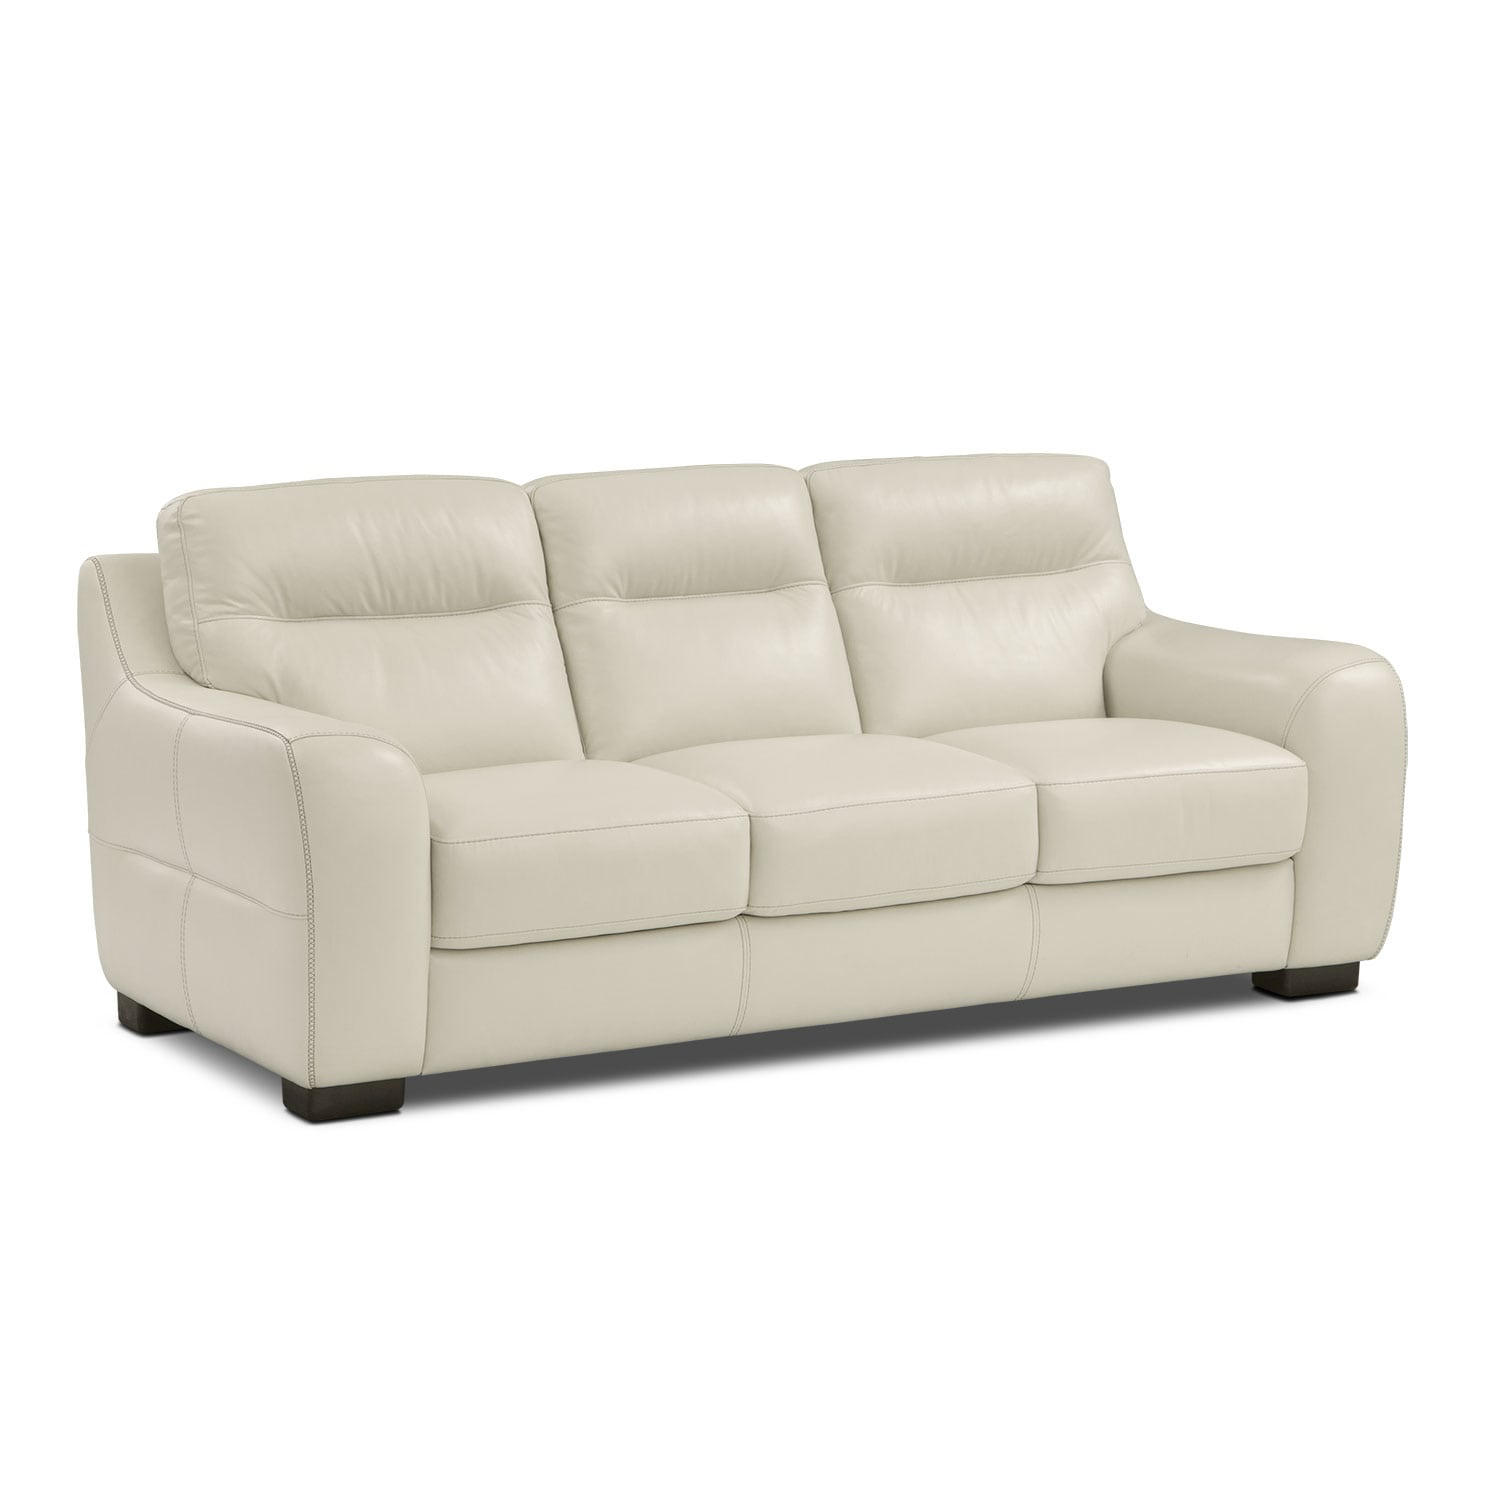 Living Room Furniture - Rocco Snow Sofa